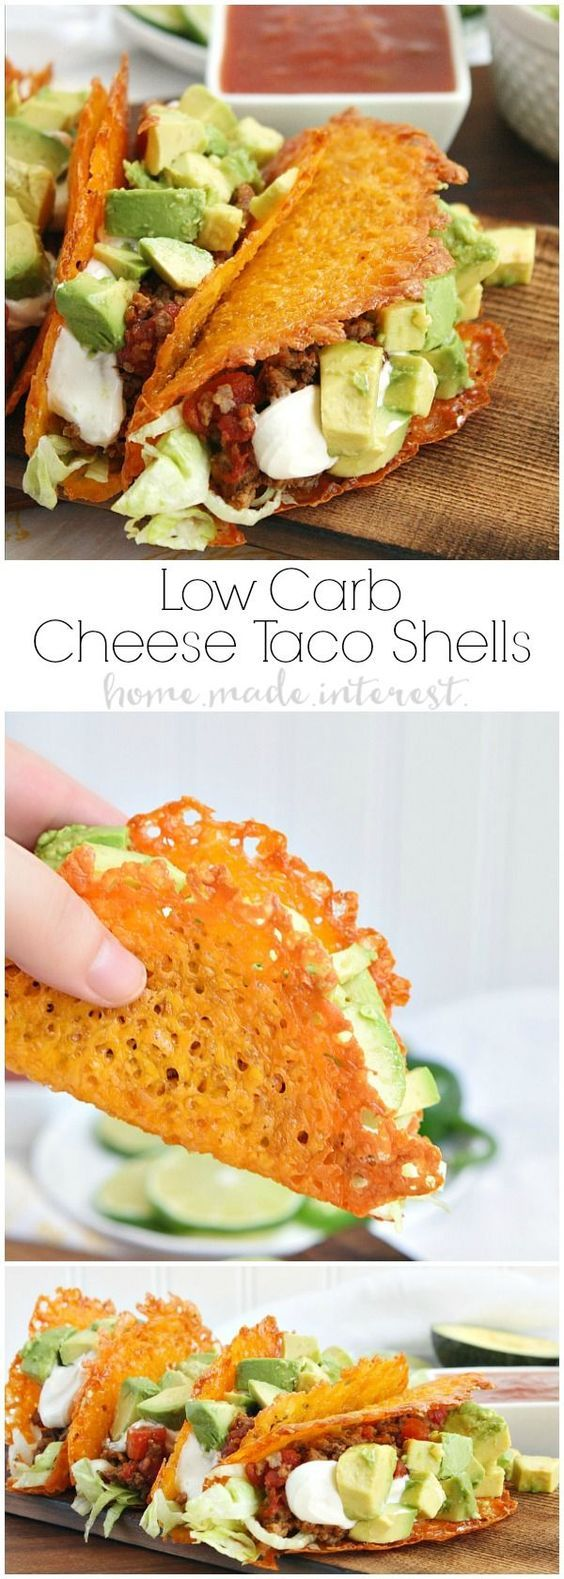 Low Carb Taco                                                                                                                                                                                 More